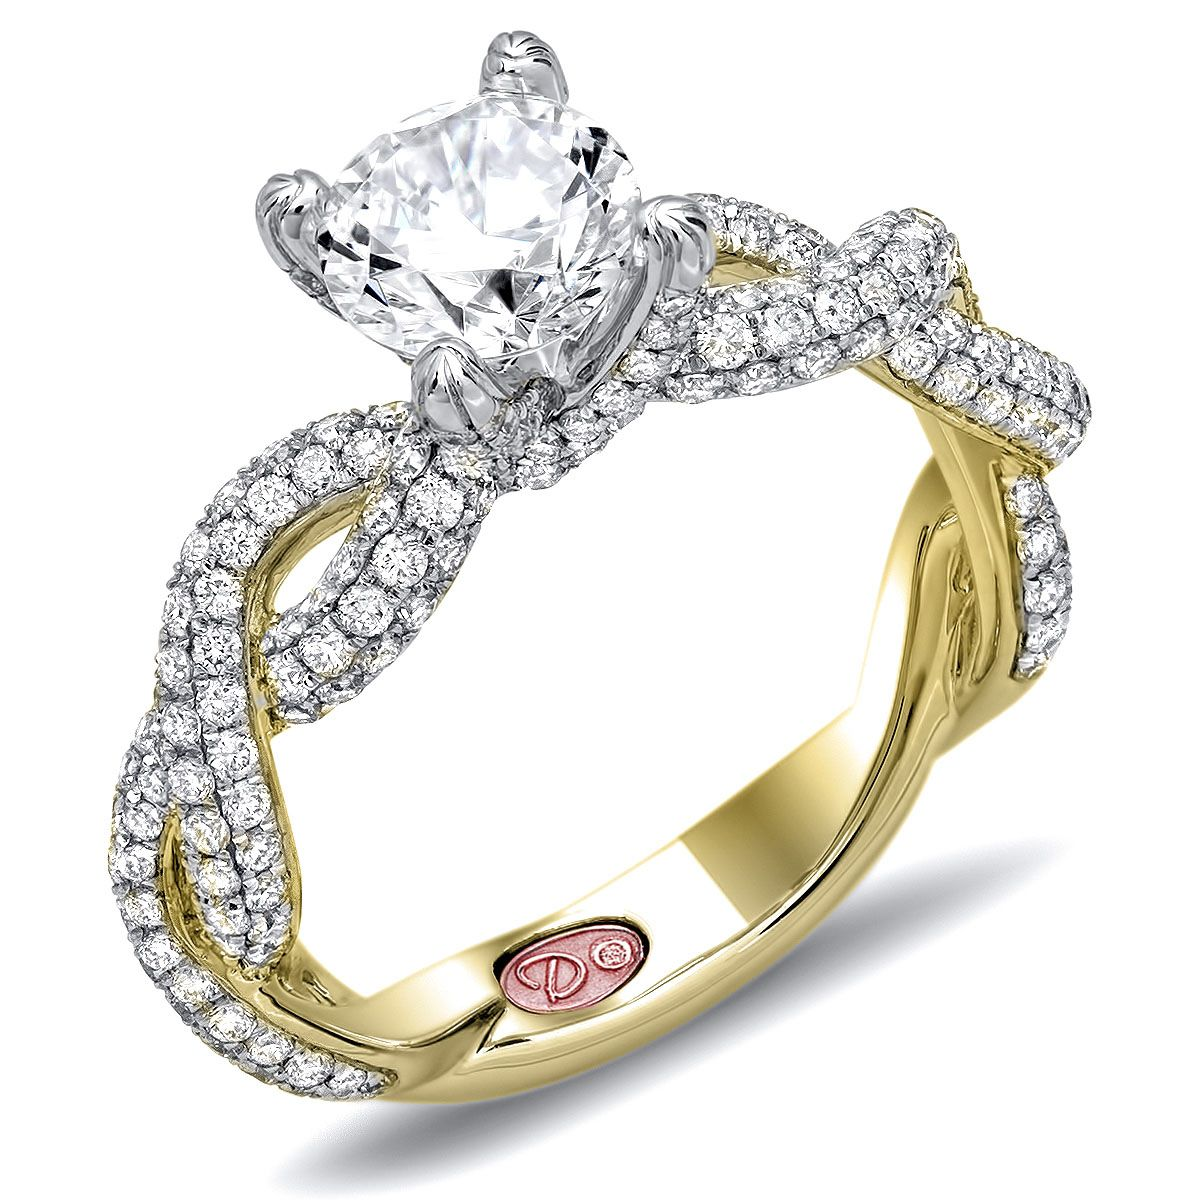 The 15 Most Beautiful Wedding Ring Designs | Gold engagement rings ...